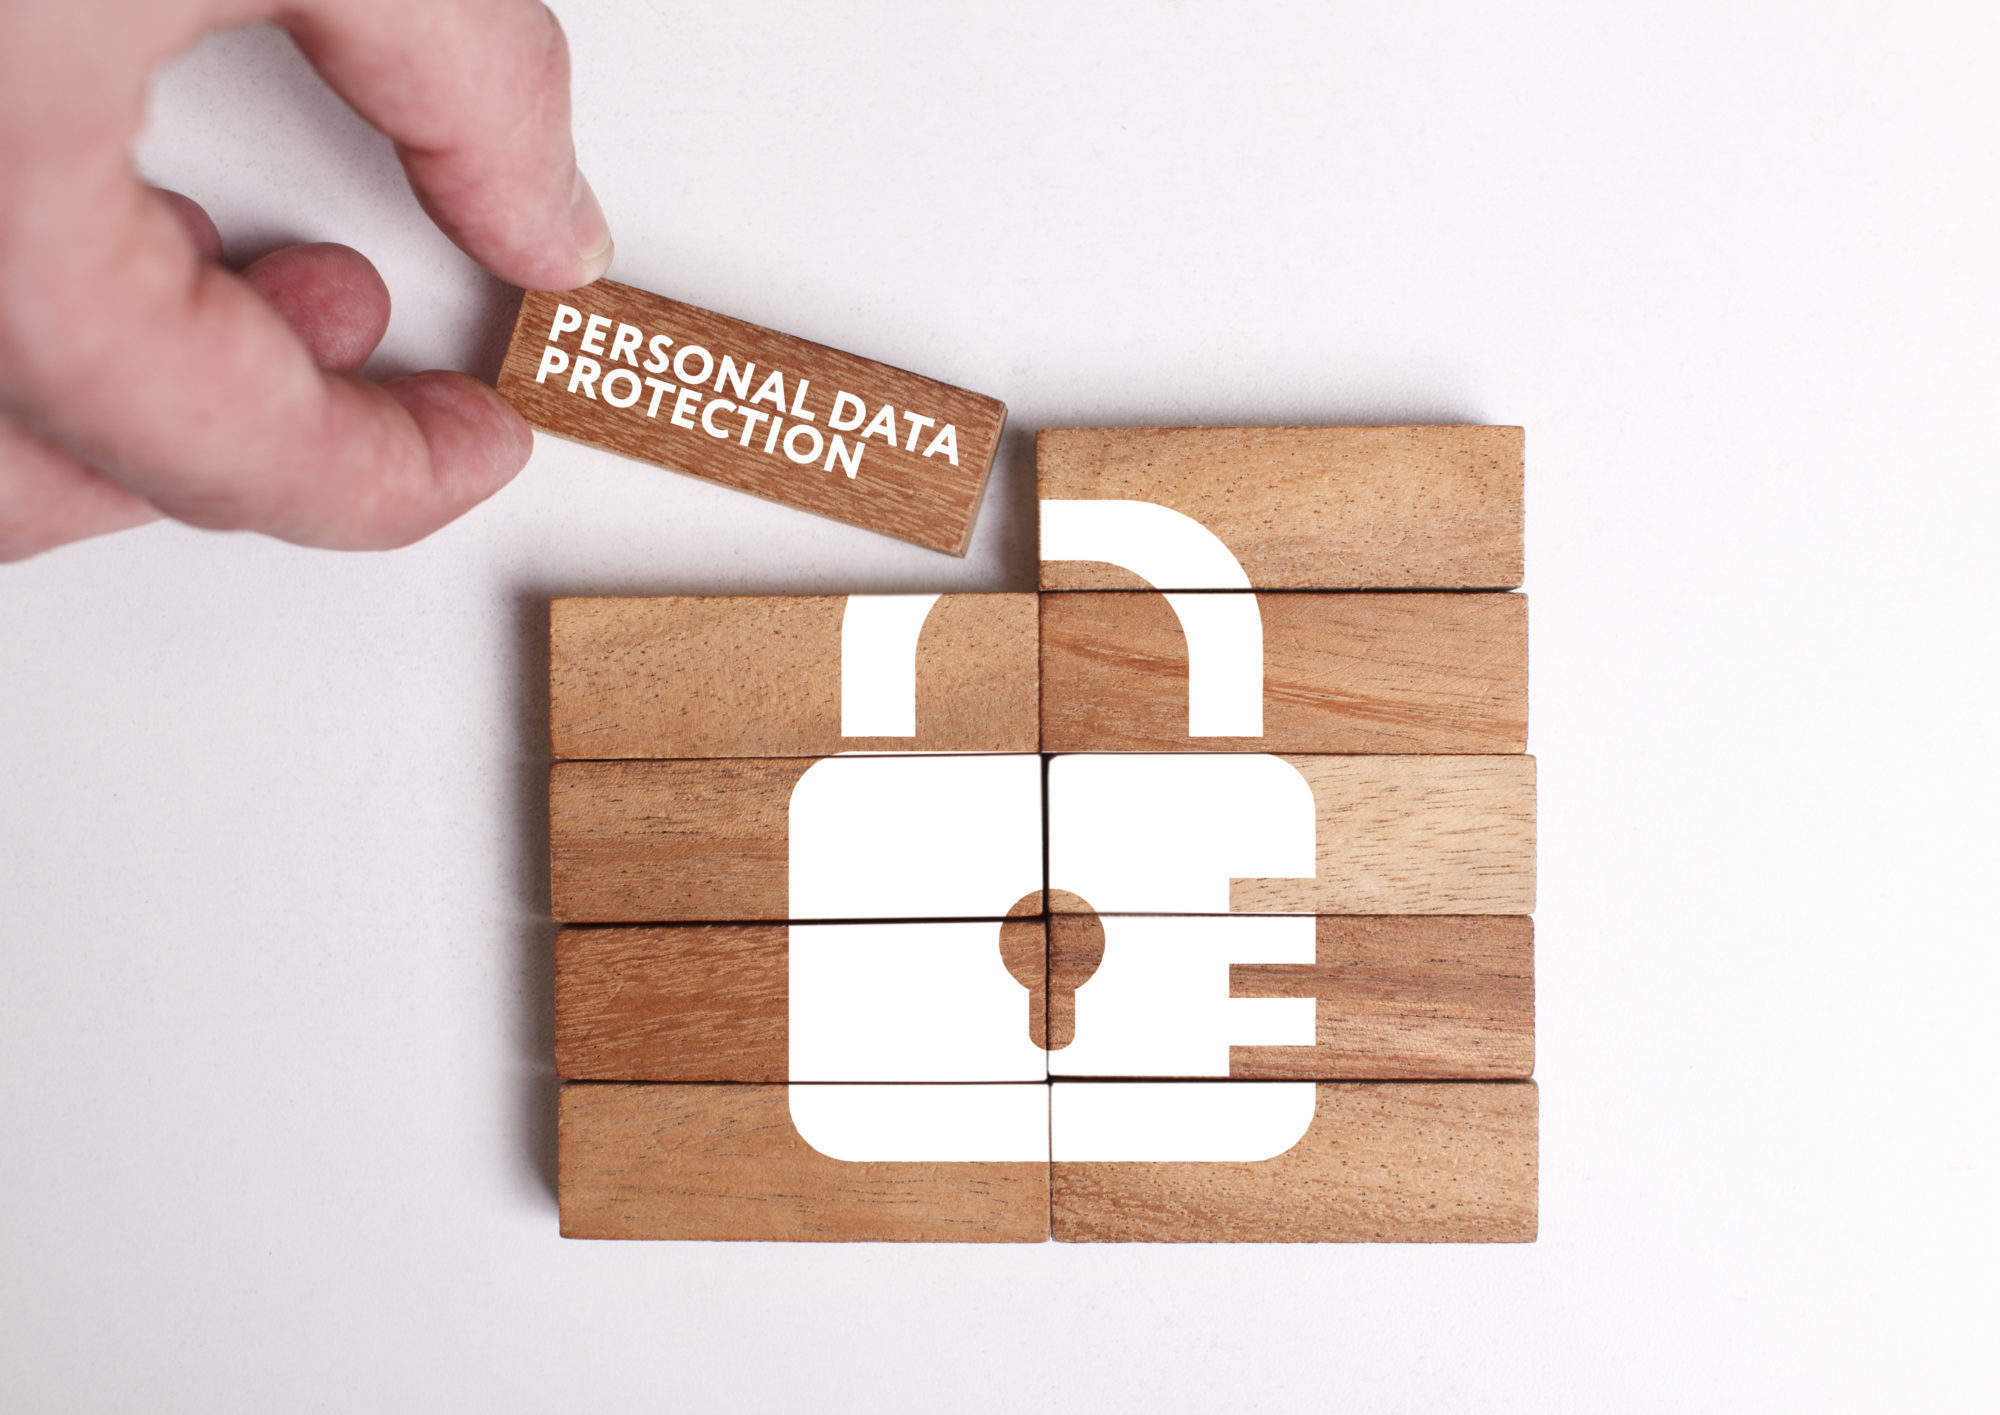 US tech giants back federal data privacy law, as long as innovation is protected